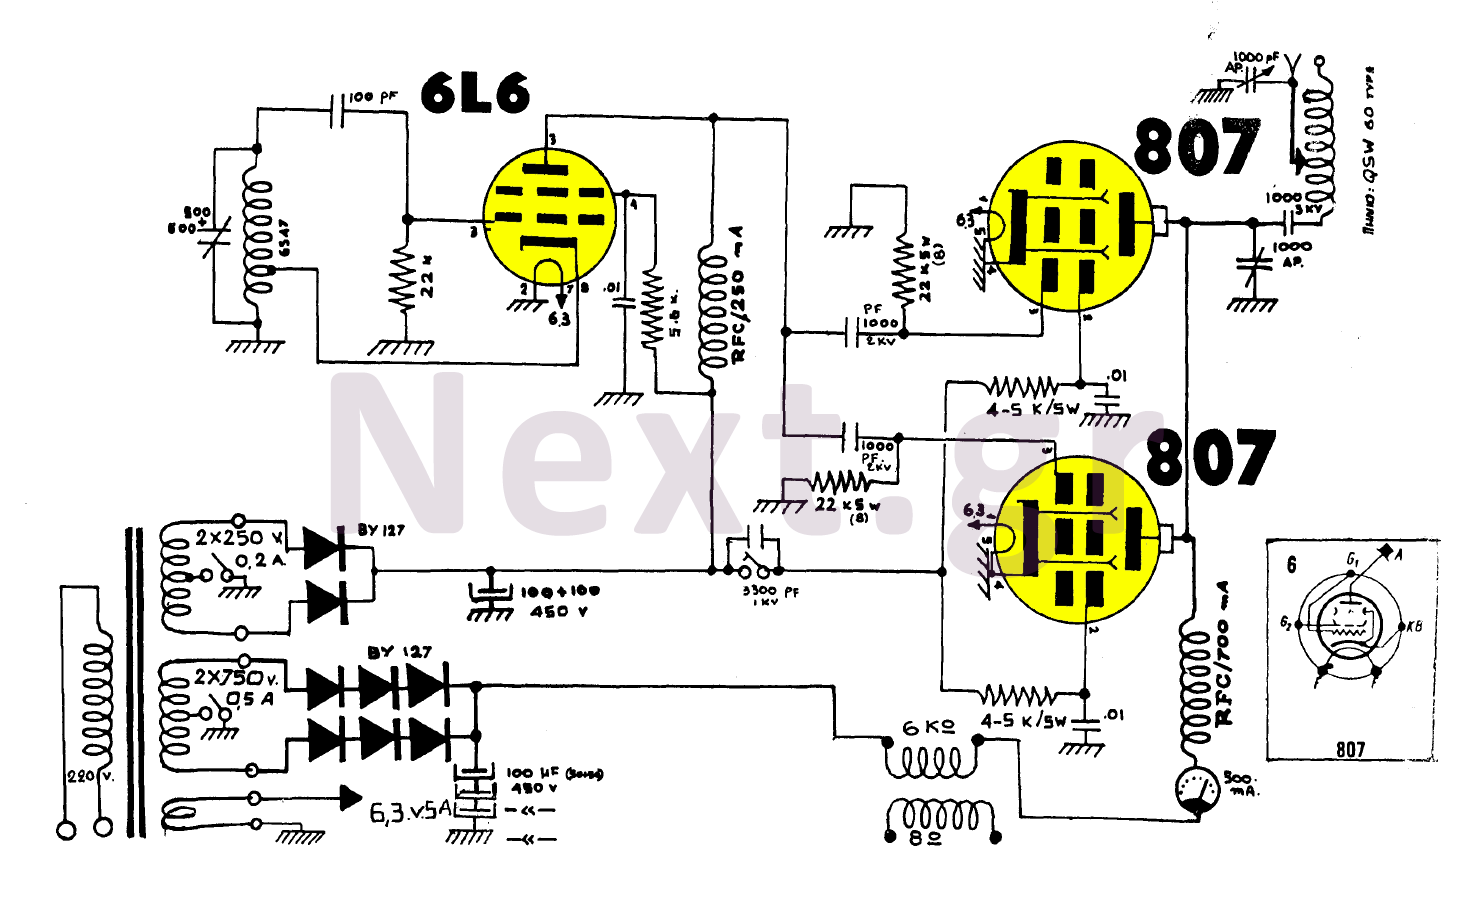 hight resolution of 100w am valve transmitter circuit